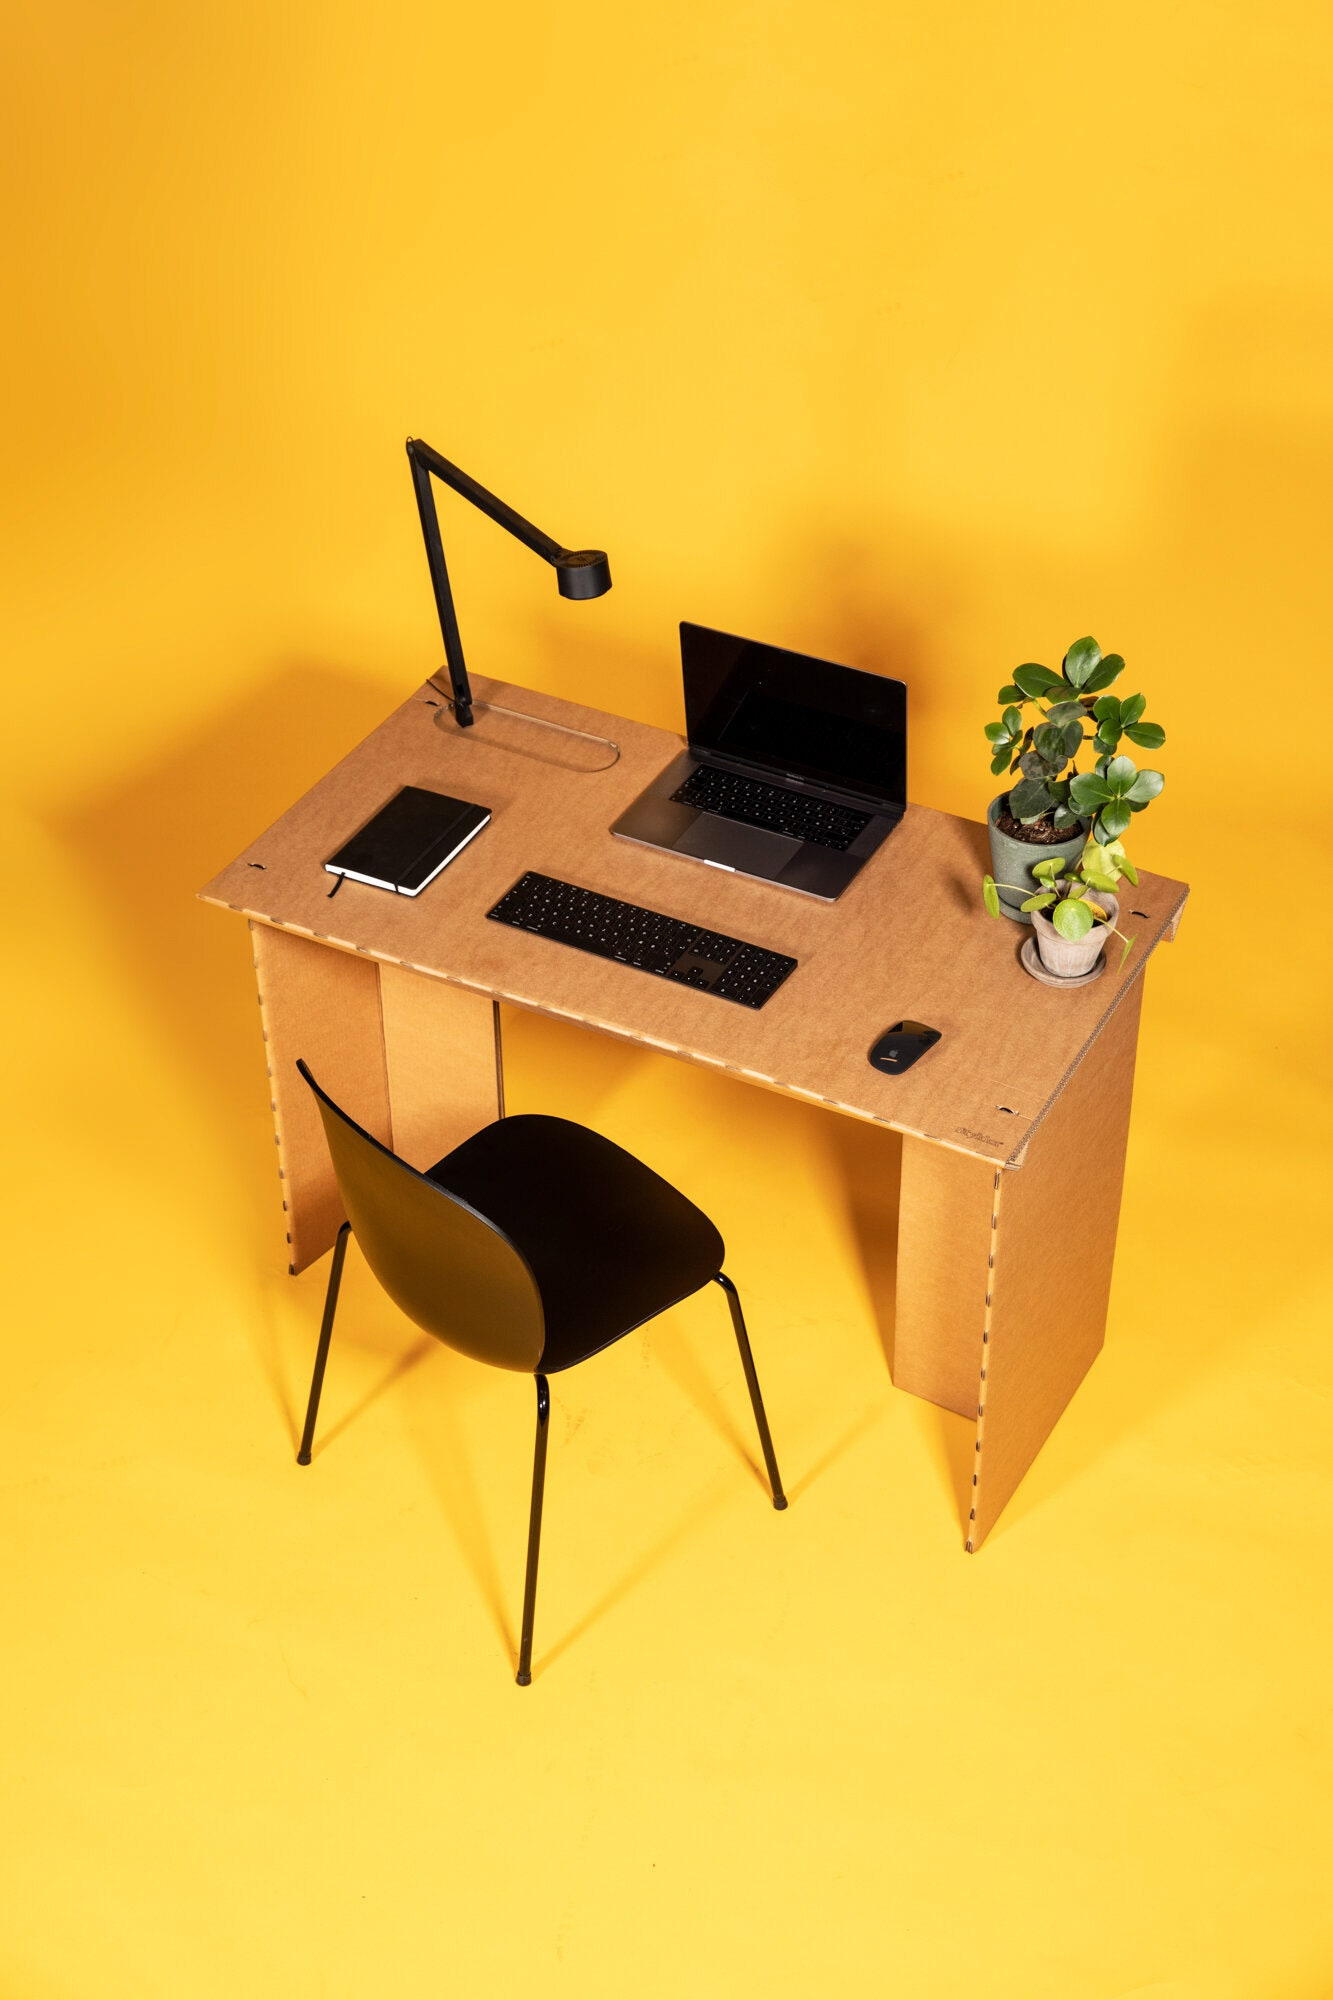 Stykka StayTheFHome Cardboard Desk Review Poor Form